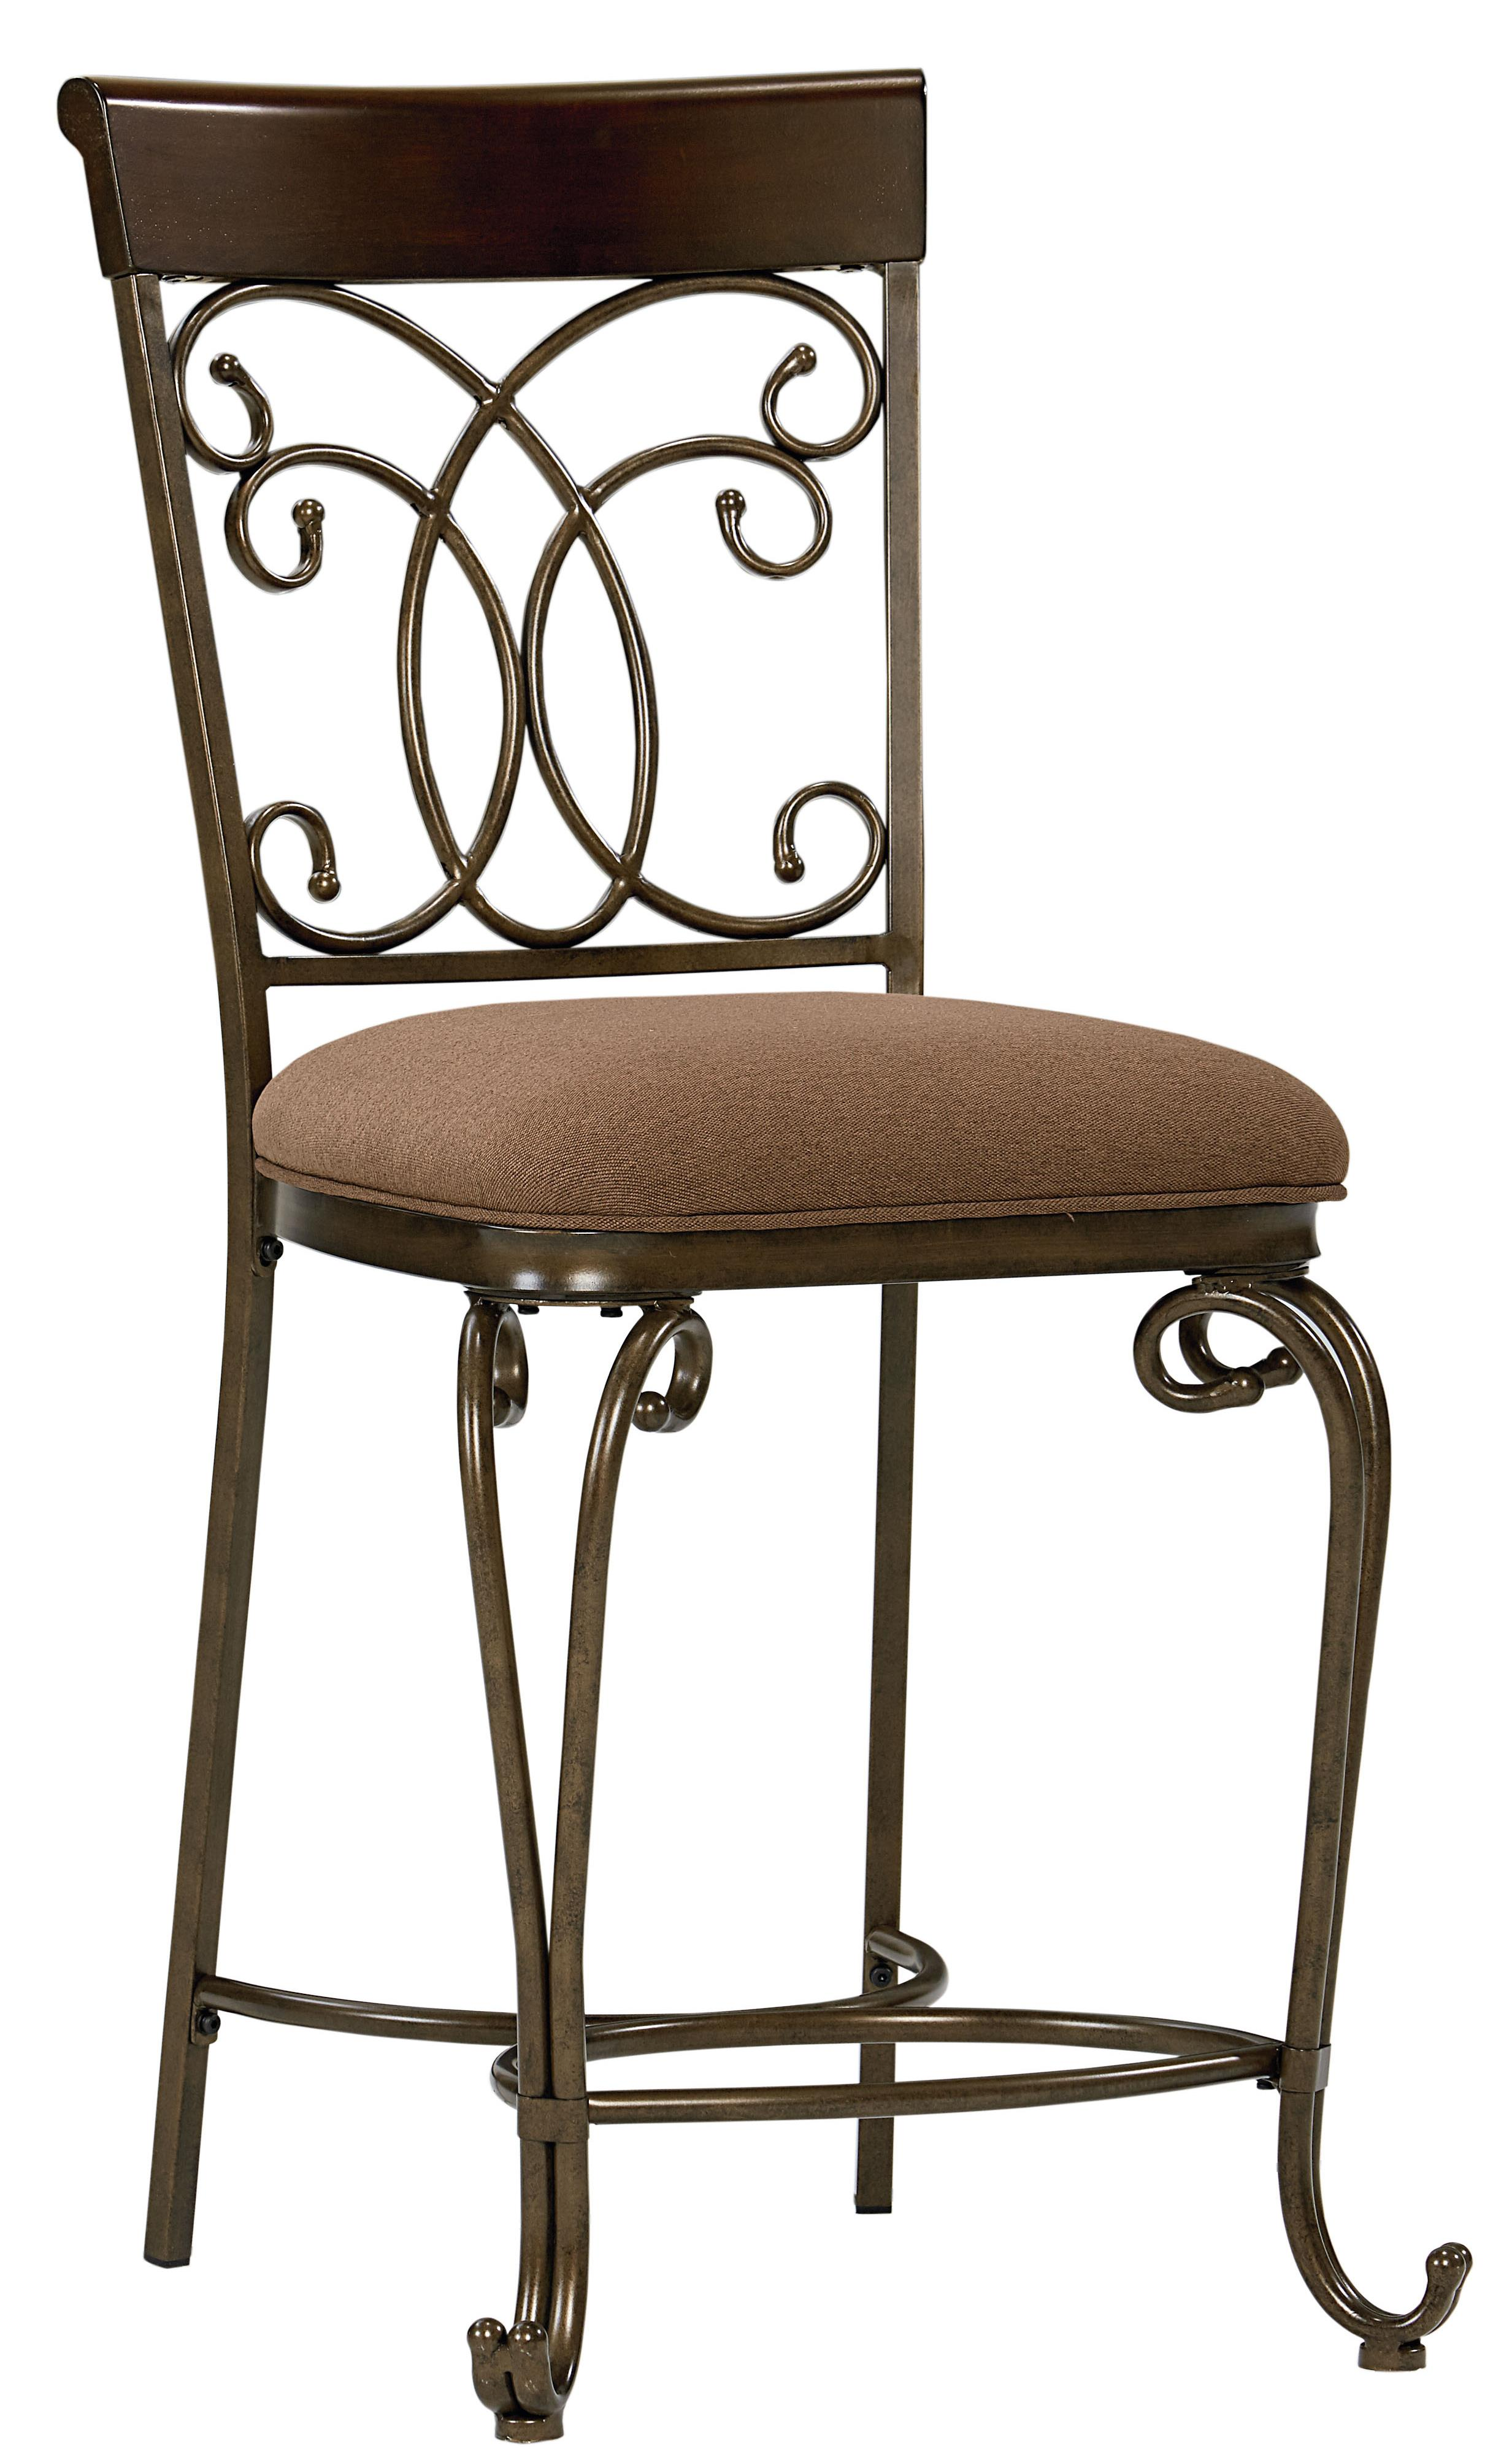 Upholstered Counter Height Chair With Ornate Metal Back by